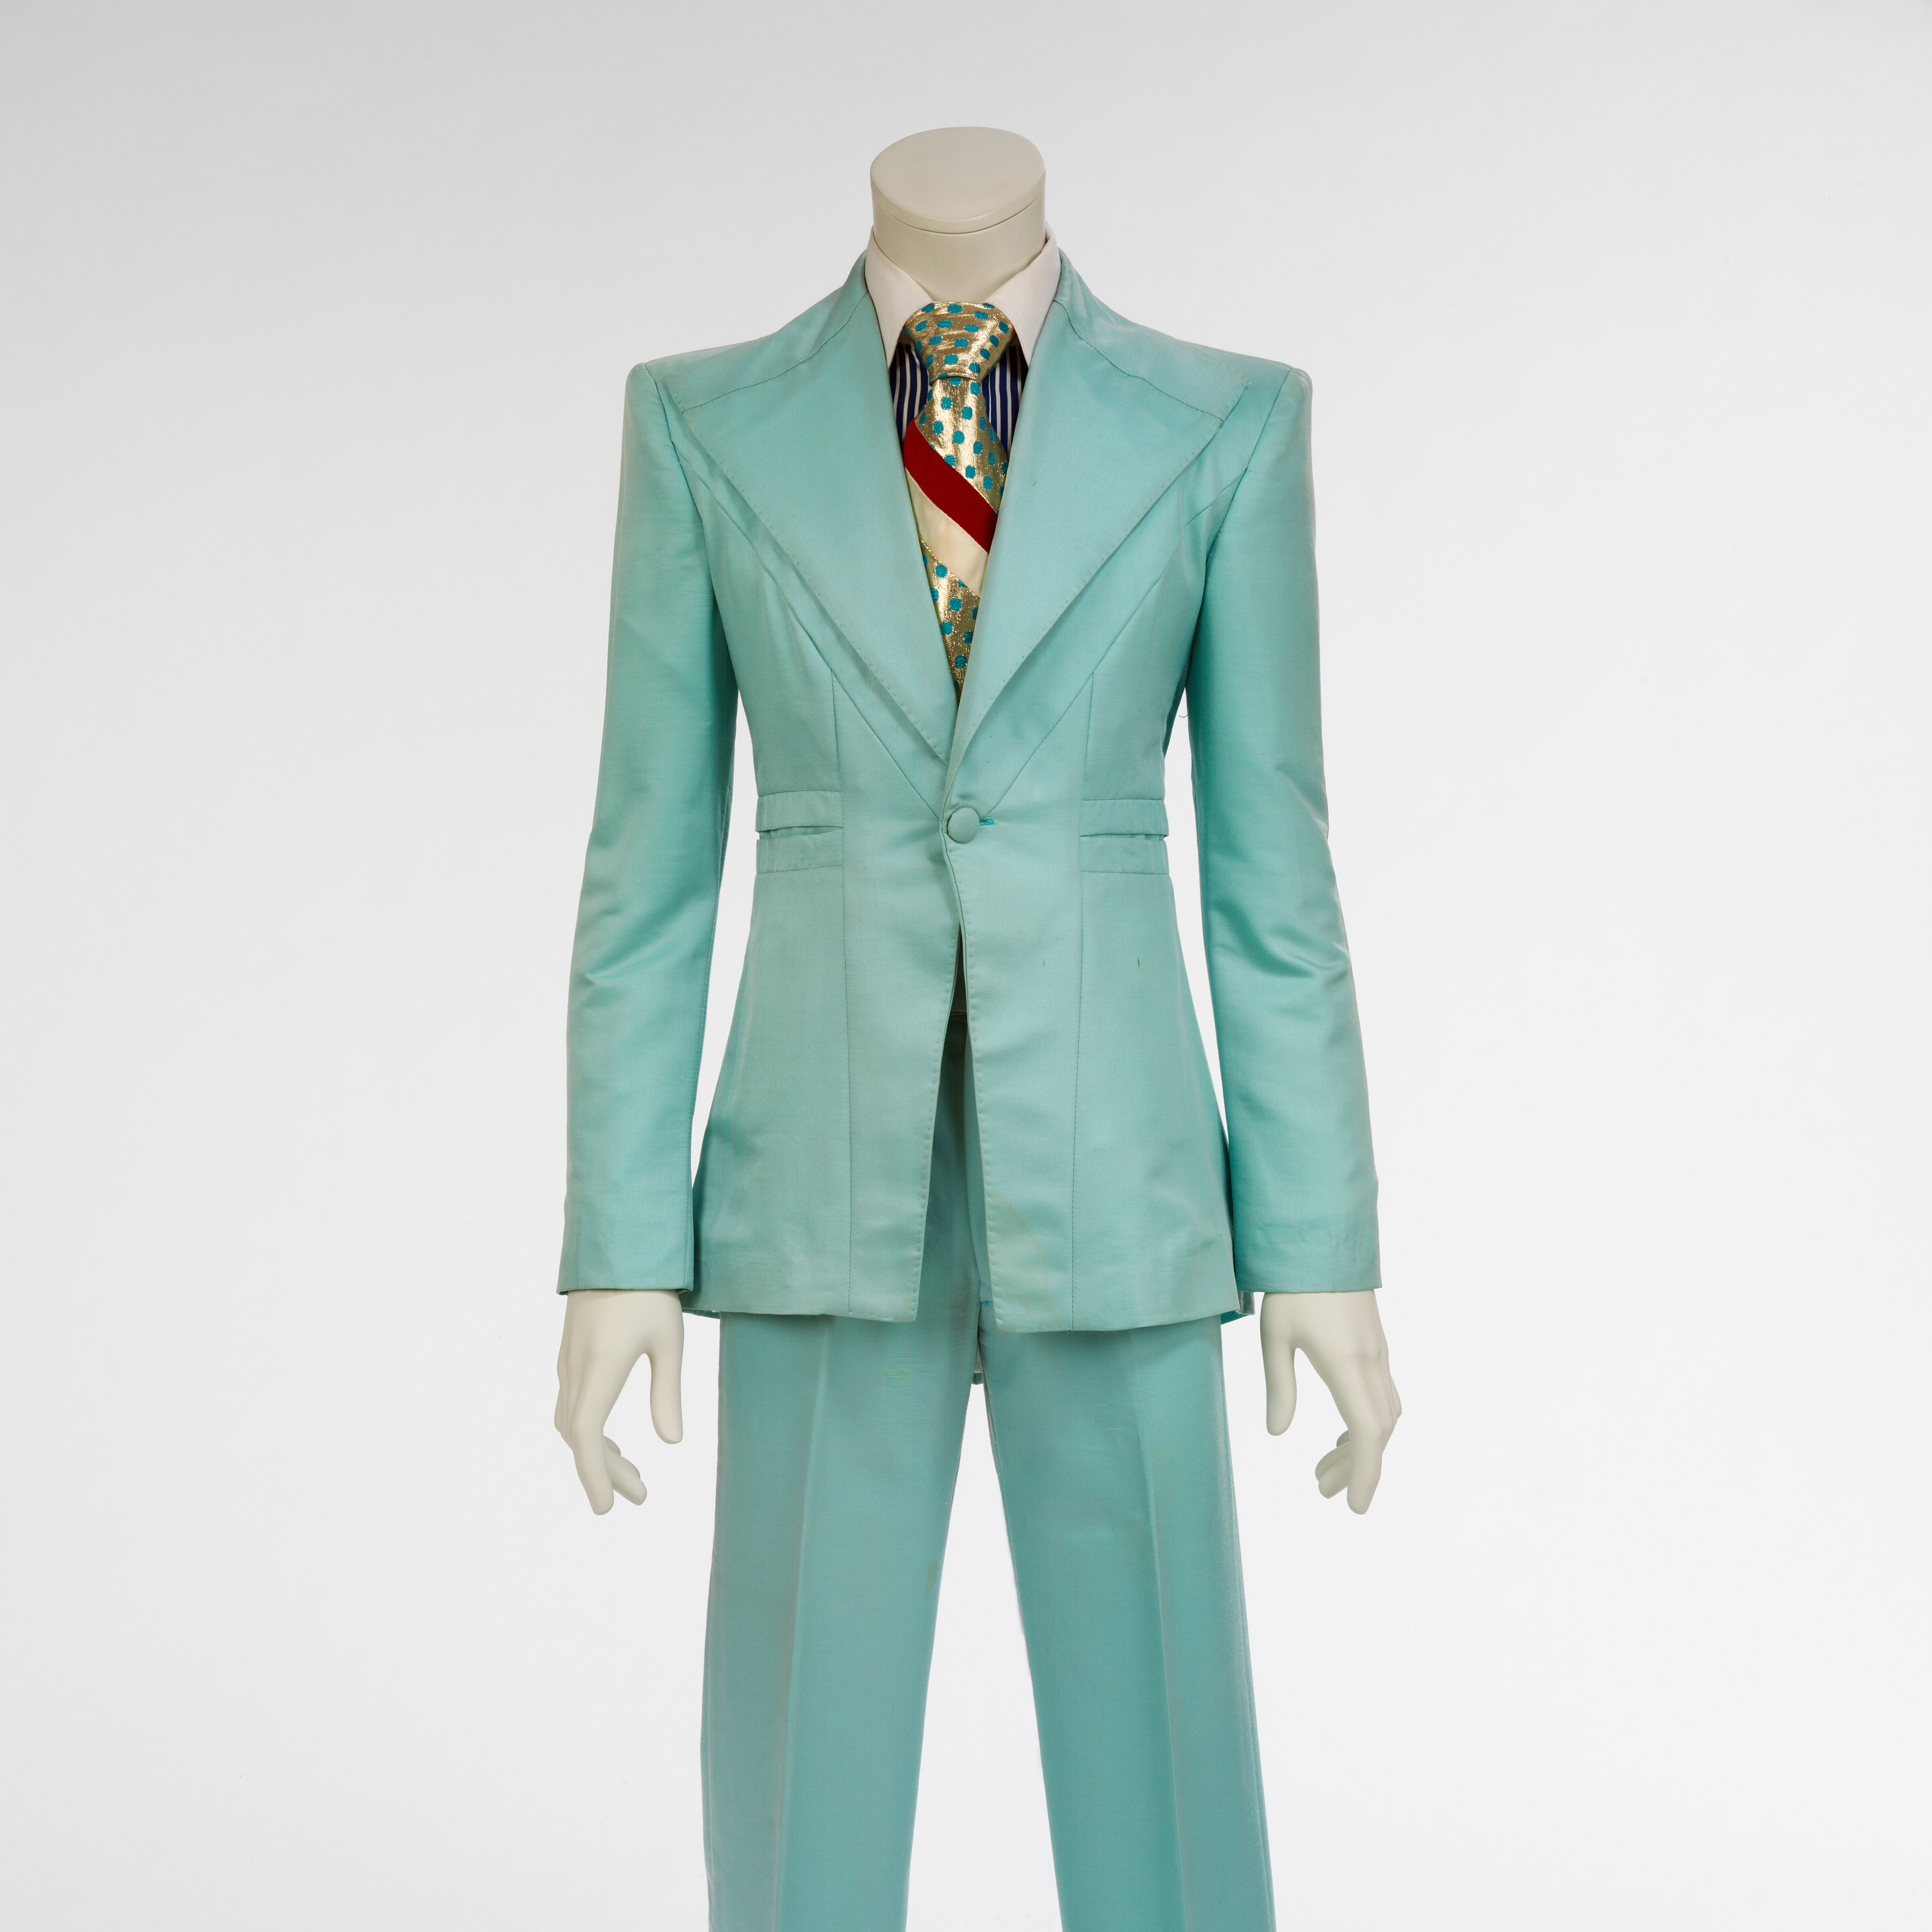 <p>Ice-blue suit, 1972. Designed by Freddie Burretti for the &ldquo;Life on Mars?&rdquo; video. Courtesy of The David Bowie Archive. Image &copy; Victoria and Albert Museum</p>